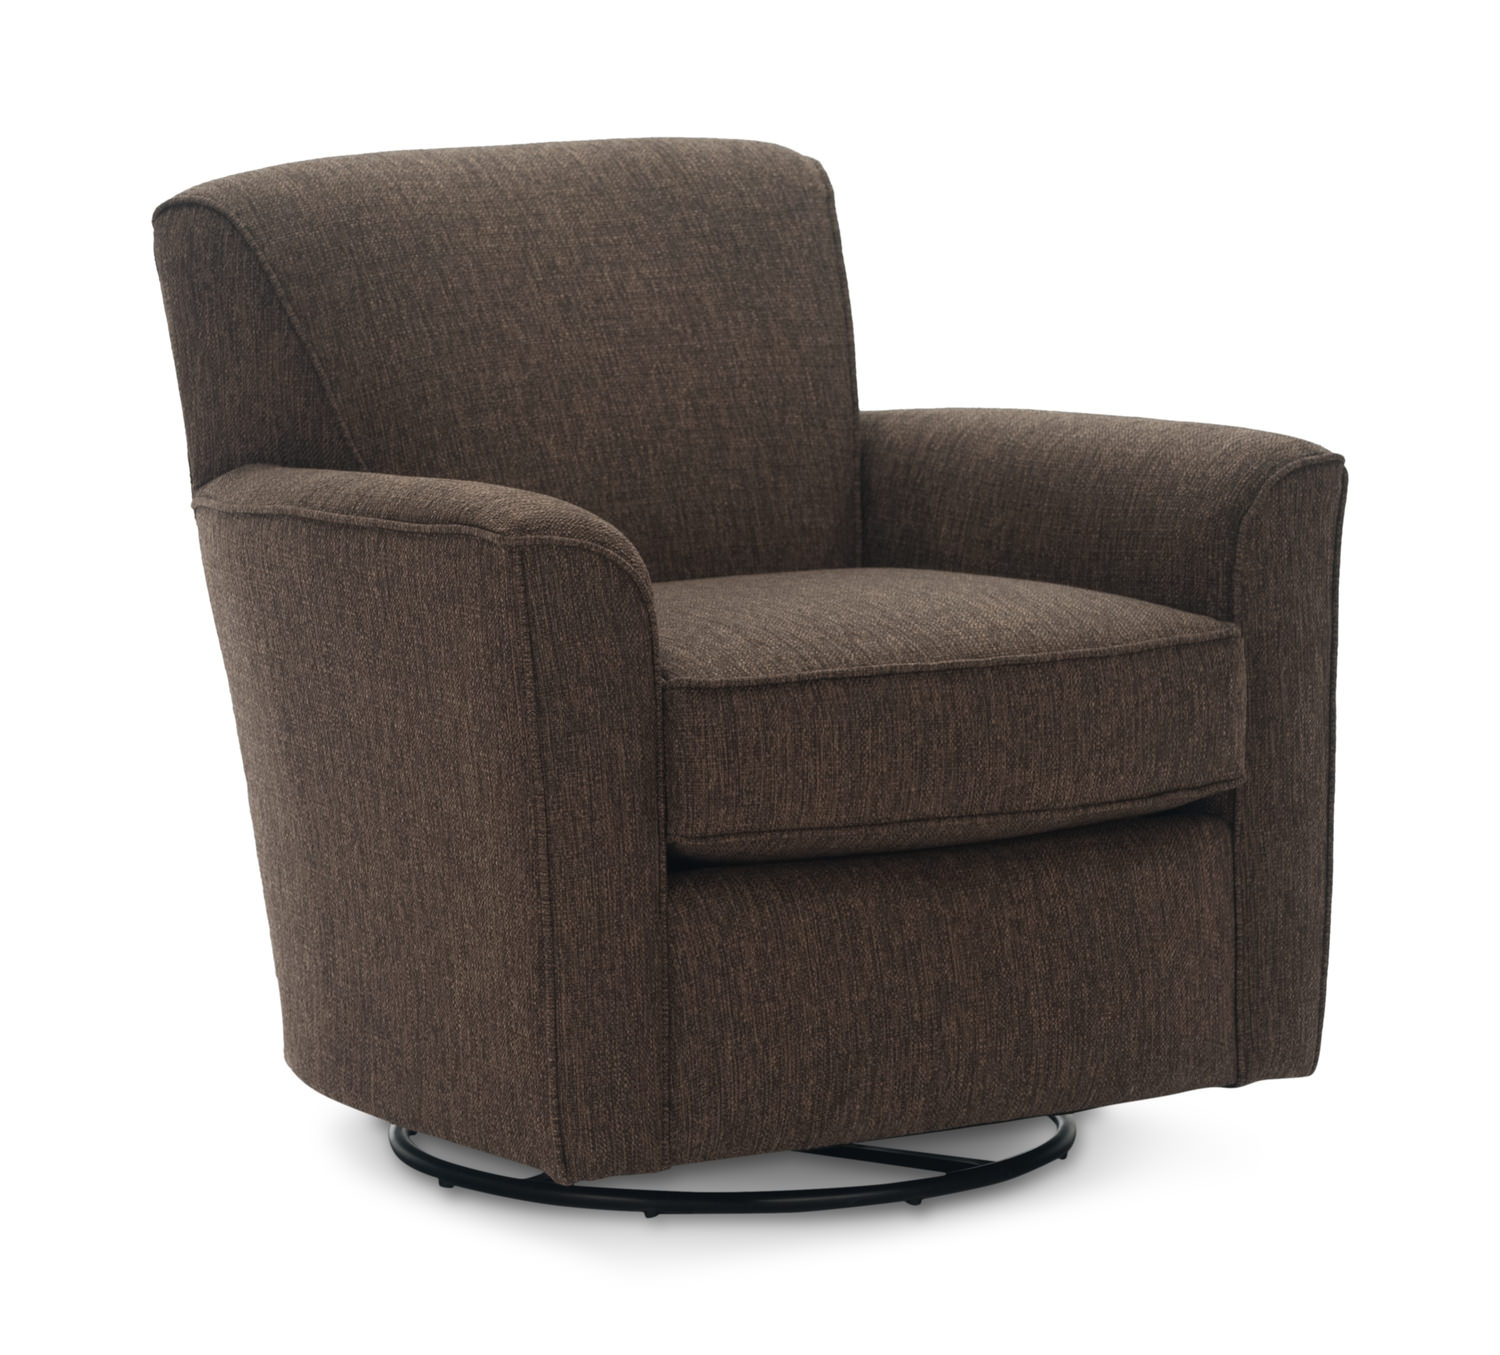 Accent Chairs & Chaises – Living Room – Hom Furniture For Manor Grey Swivel Chairs (Image 3 of 25)